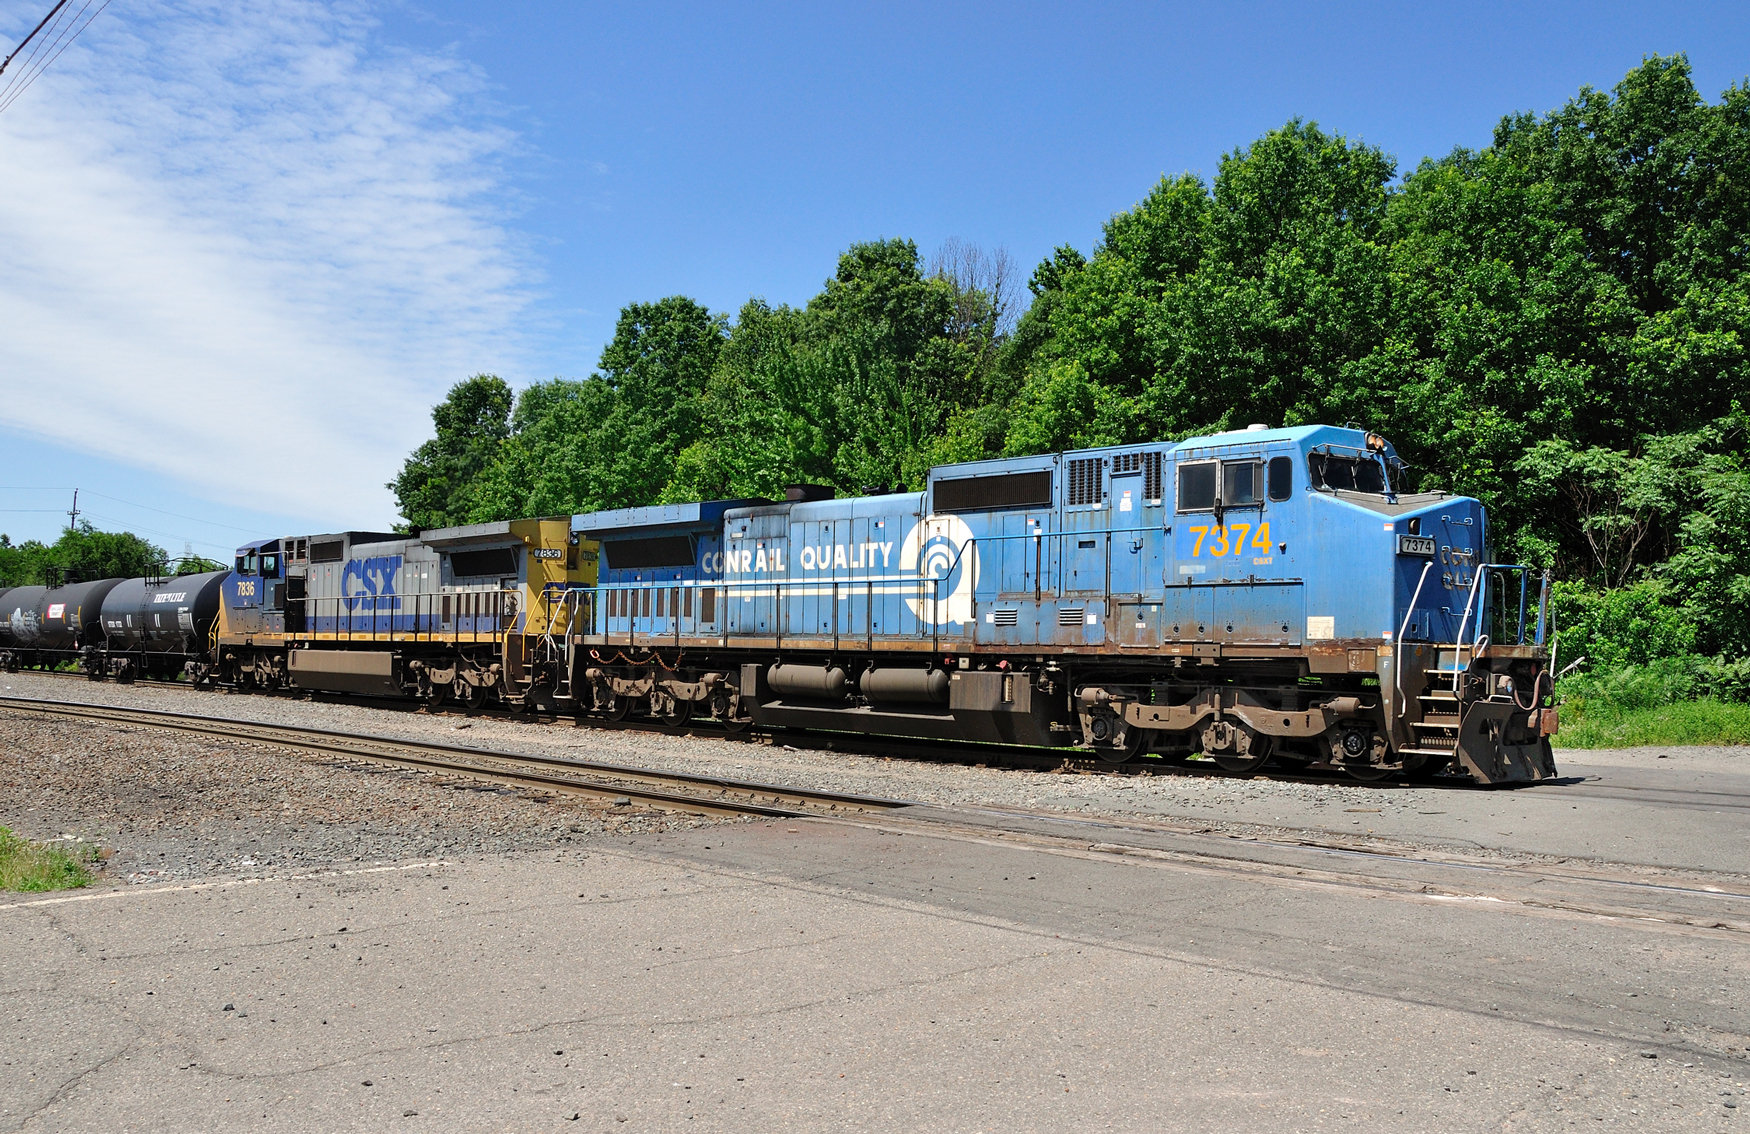 CSX locomotive consist noteworthy for its rare Blue paint